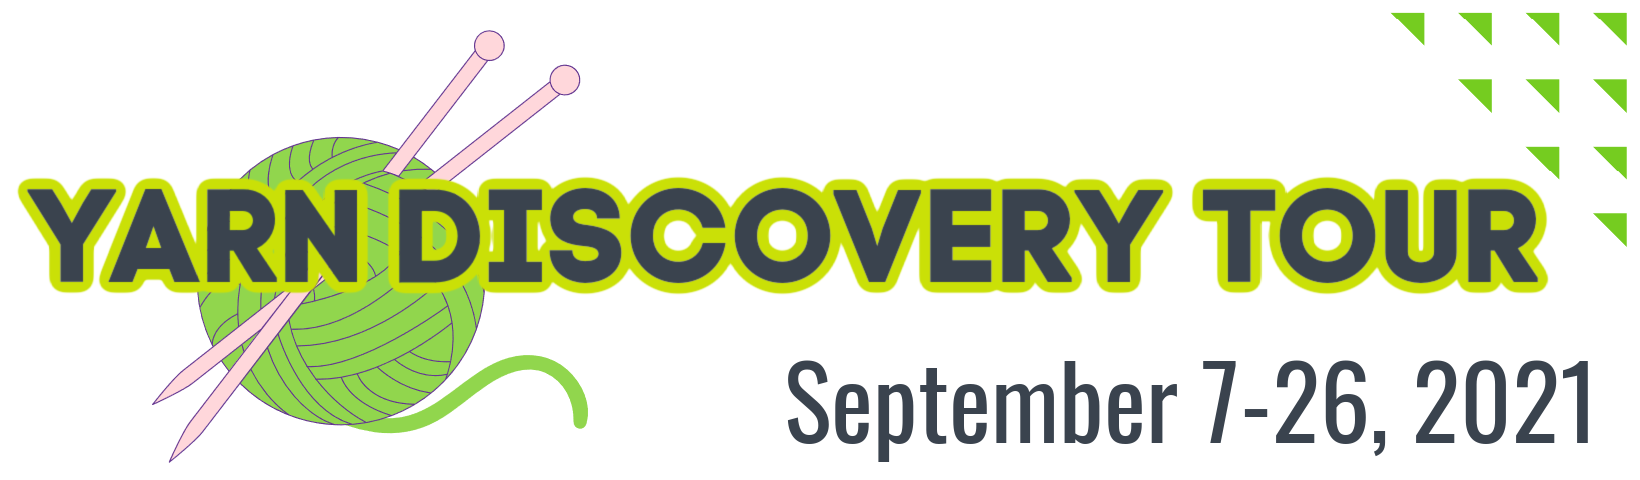 Yarn Discovery Tour 2021